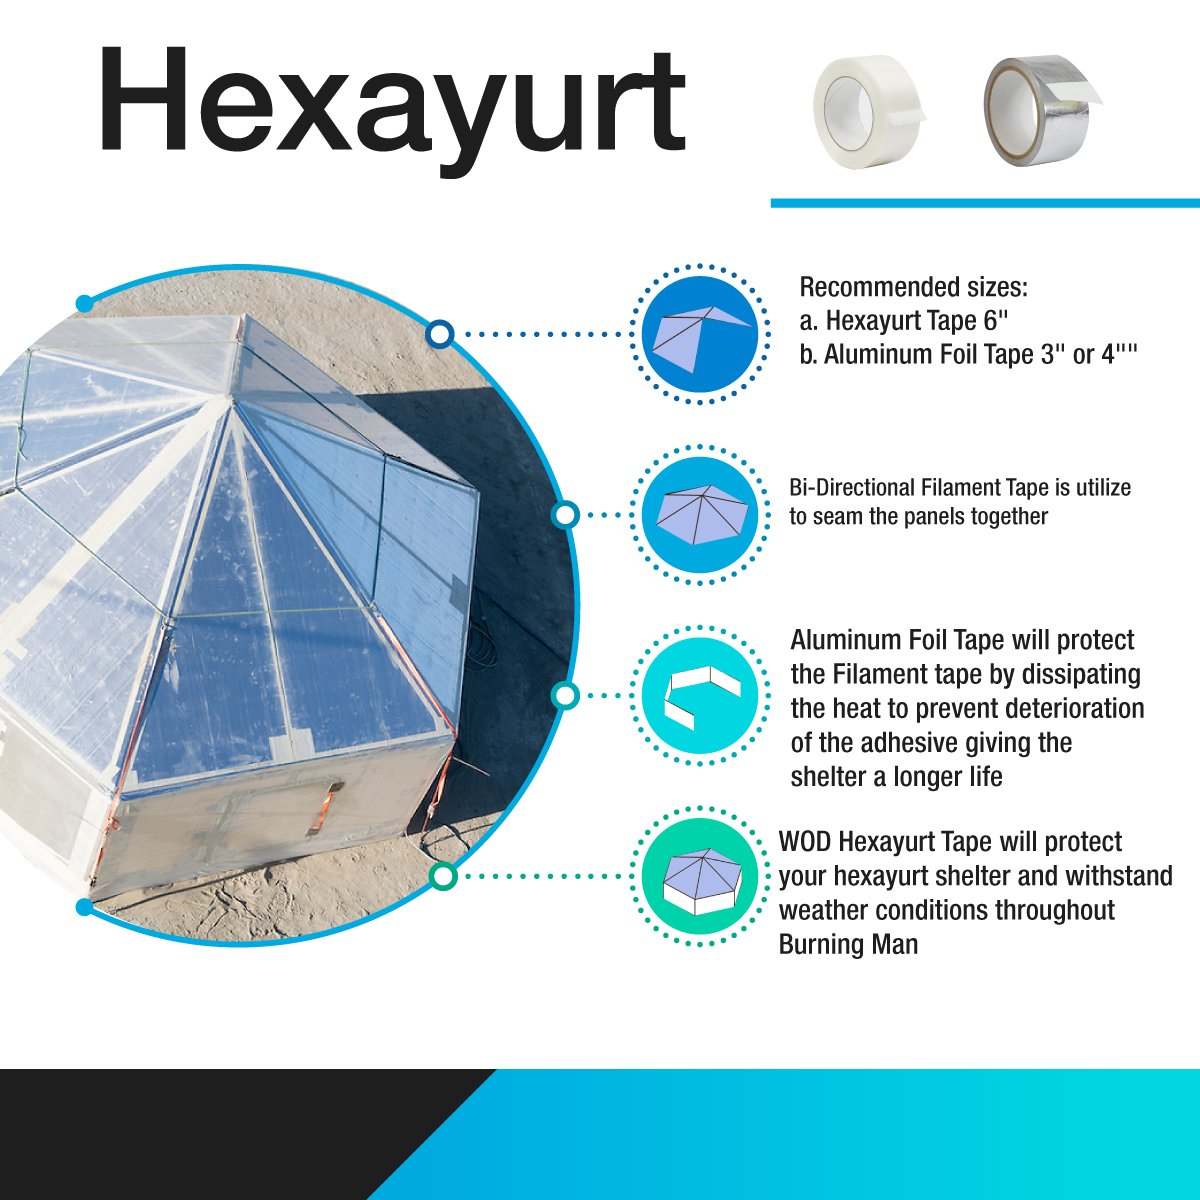 WOD HXT HEXAYURT Tape Aluminum Foil Tape Premium Grade General Purpose Heat Shield Resistant - Good for HVAC, Air Ducts, Insulation (Available in Multiple Packs): 3 in. Wide x 50 yds. by WOD Tape (Image #5)